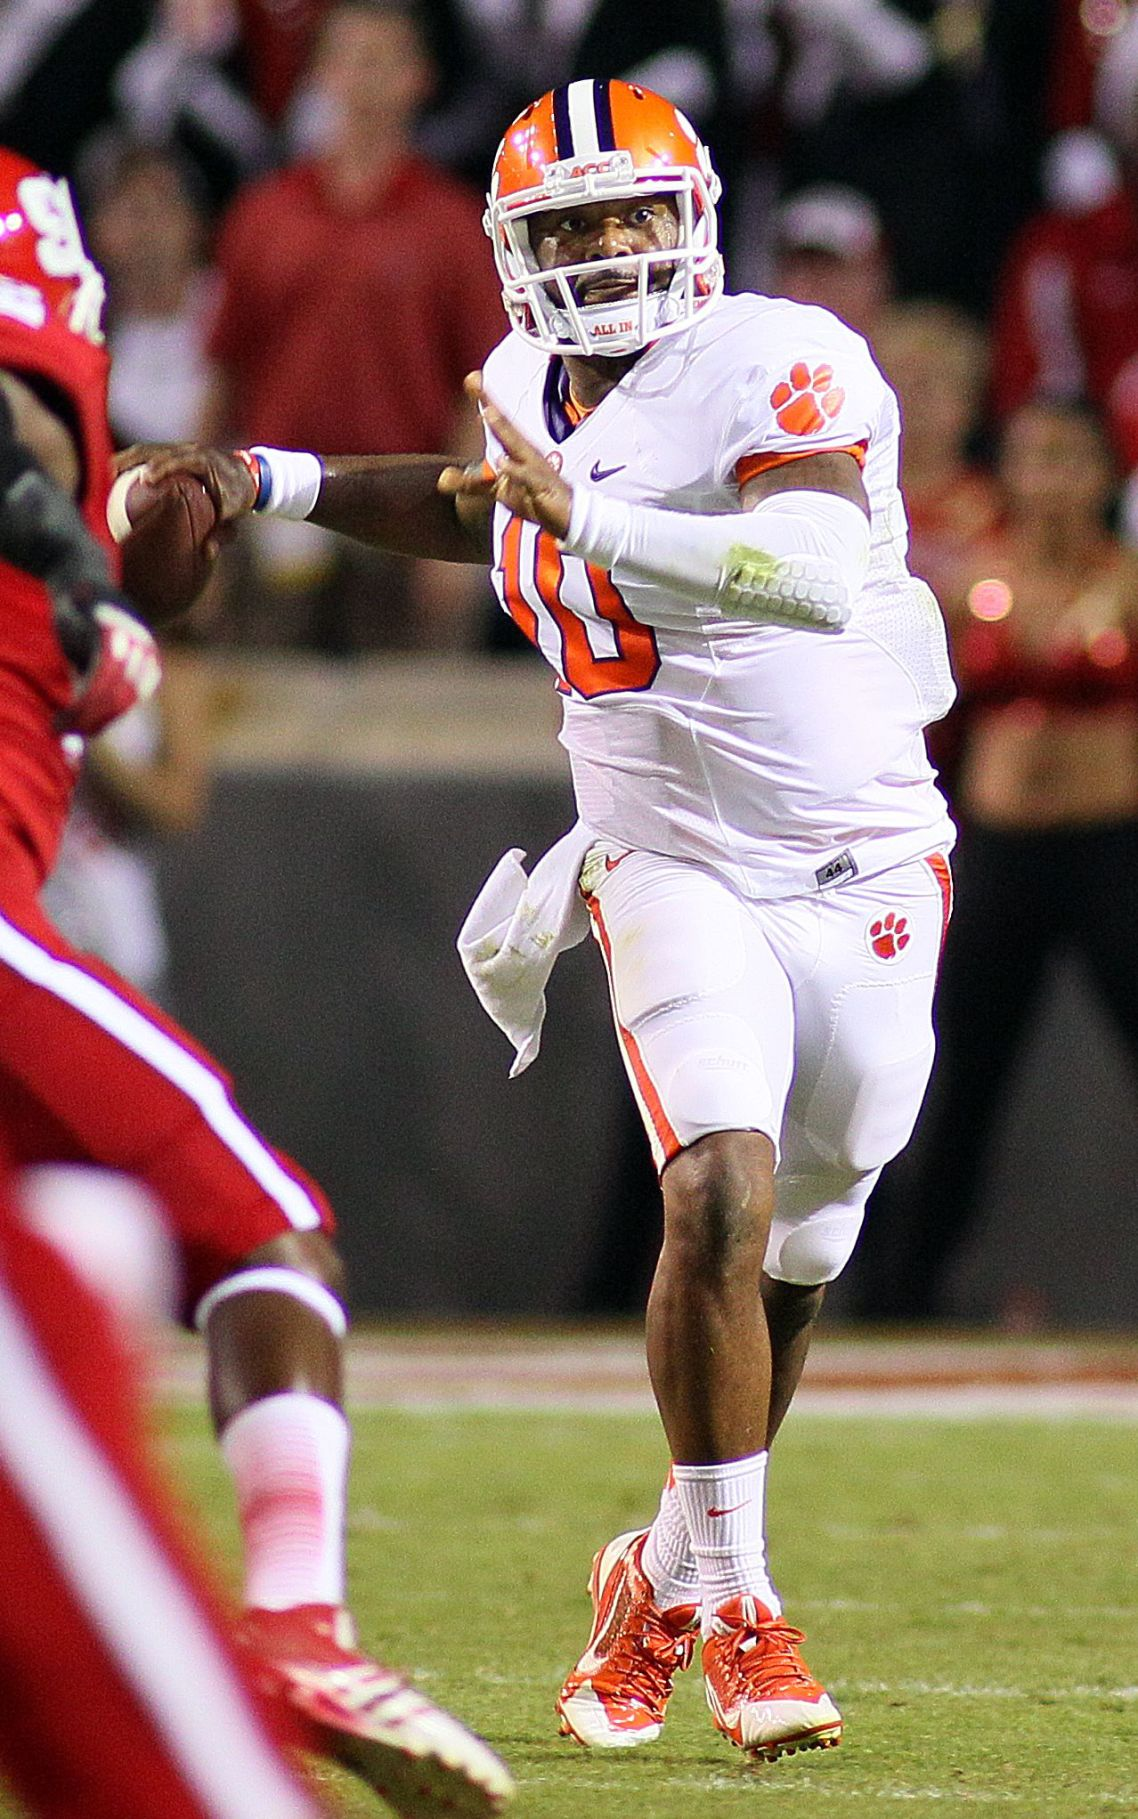 Clemson survives NC State 26-14, lifted by a lucky sideline and Martavis Bryant's second-half TDs